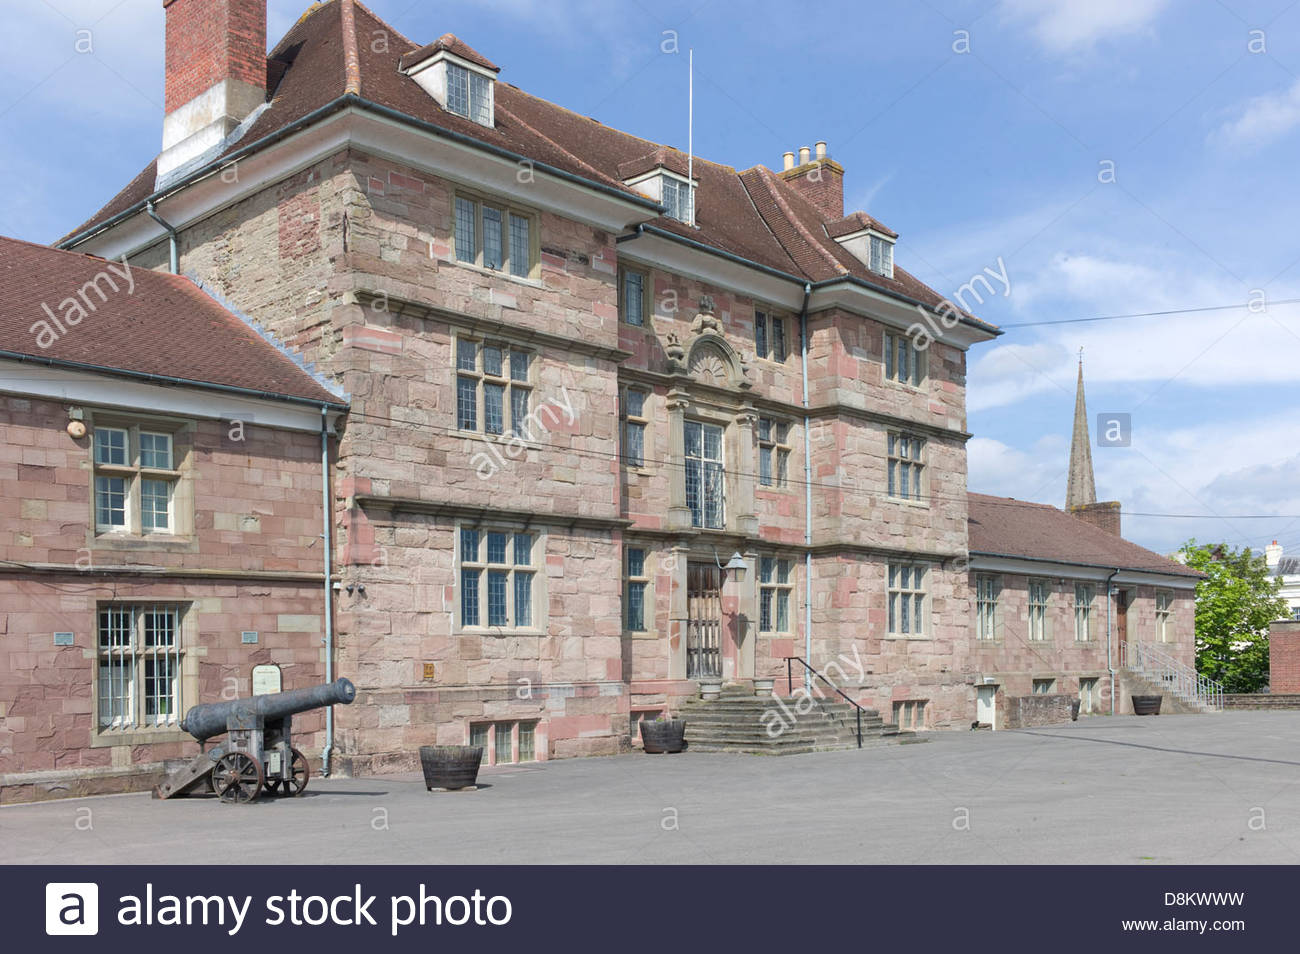 Royal Monmouthshire Royal Engineers headquarters, Monmouth, Wales, UK Stock Photo